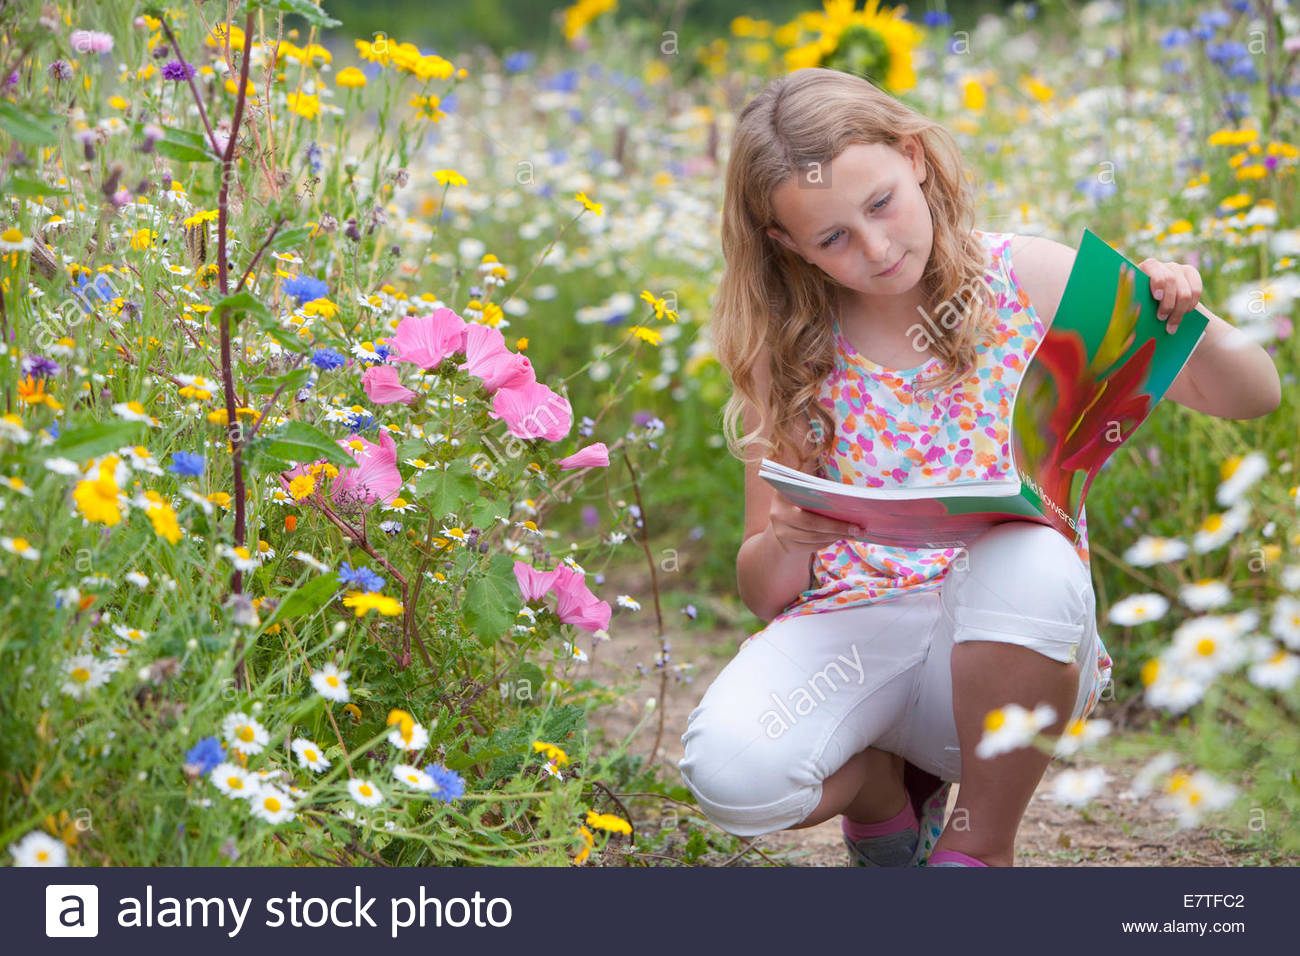 Girl squatting on path looking at botany book in field of wildflowers - Stock Image